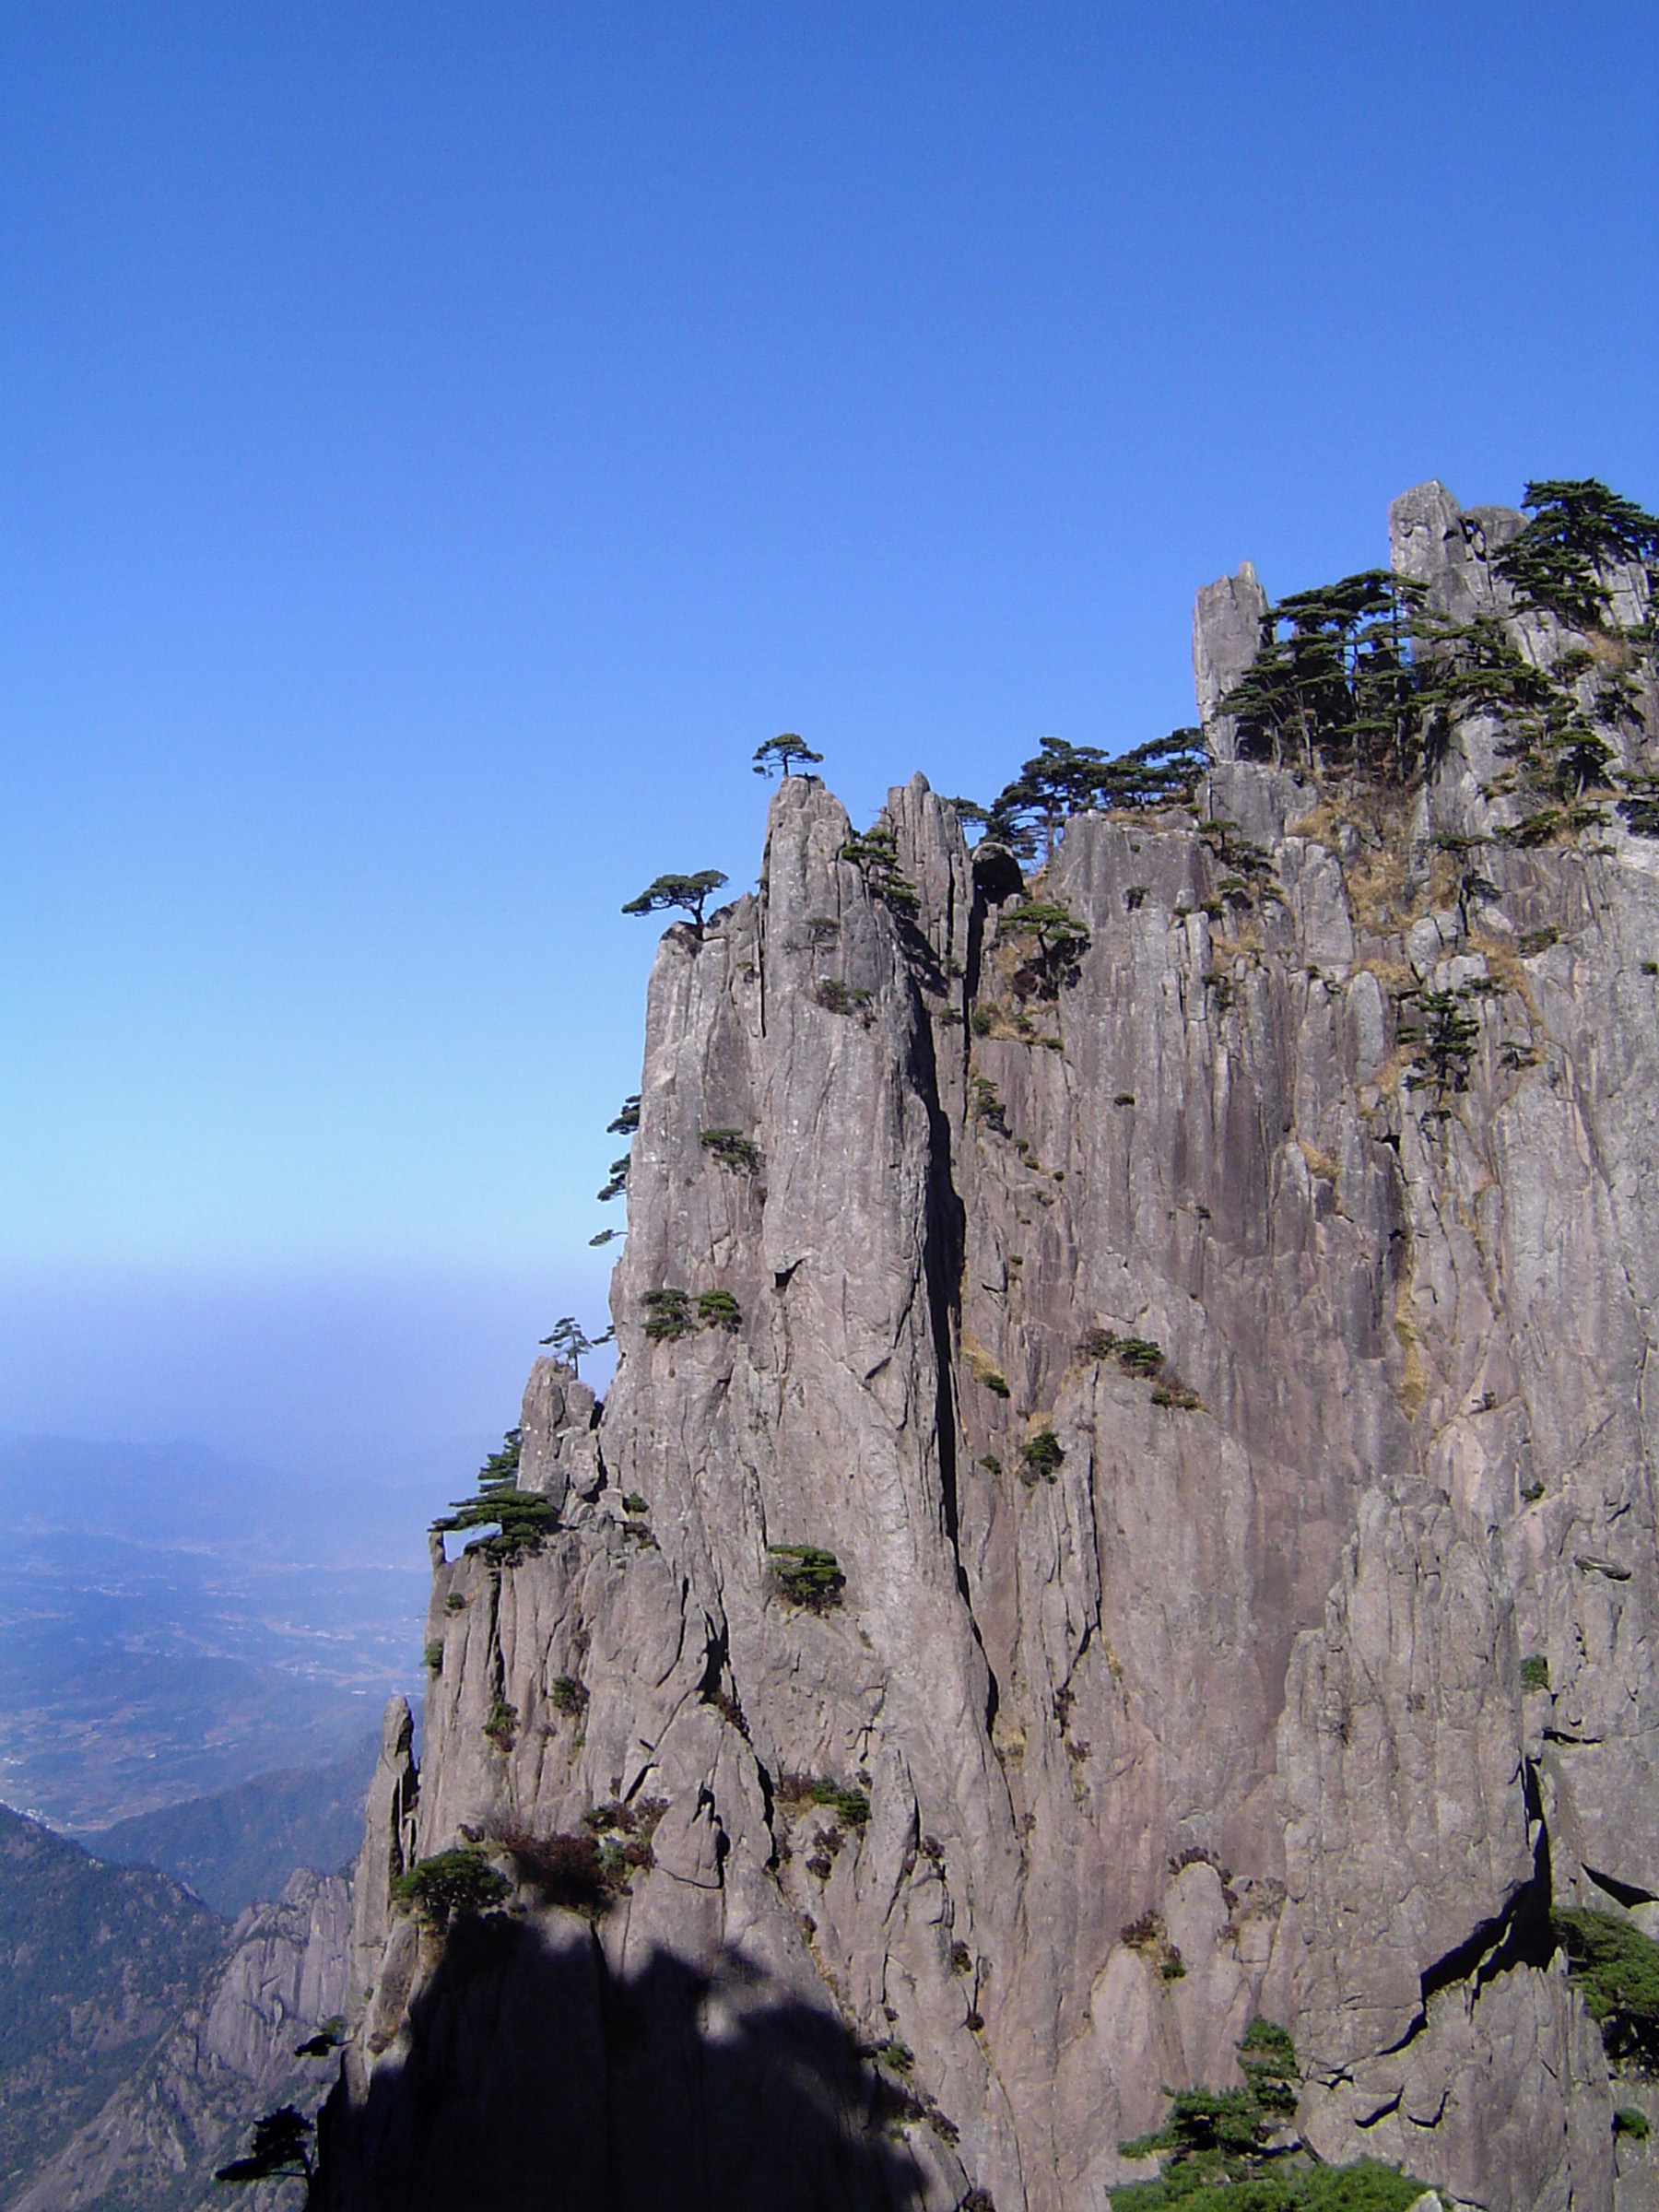 Pine Trees Growing at Huangshan Yellow Mountain at China. Captured with Light Blue Sky Background.